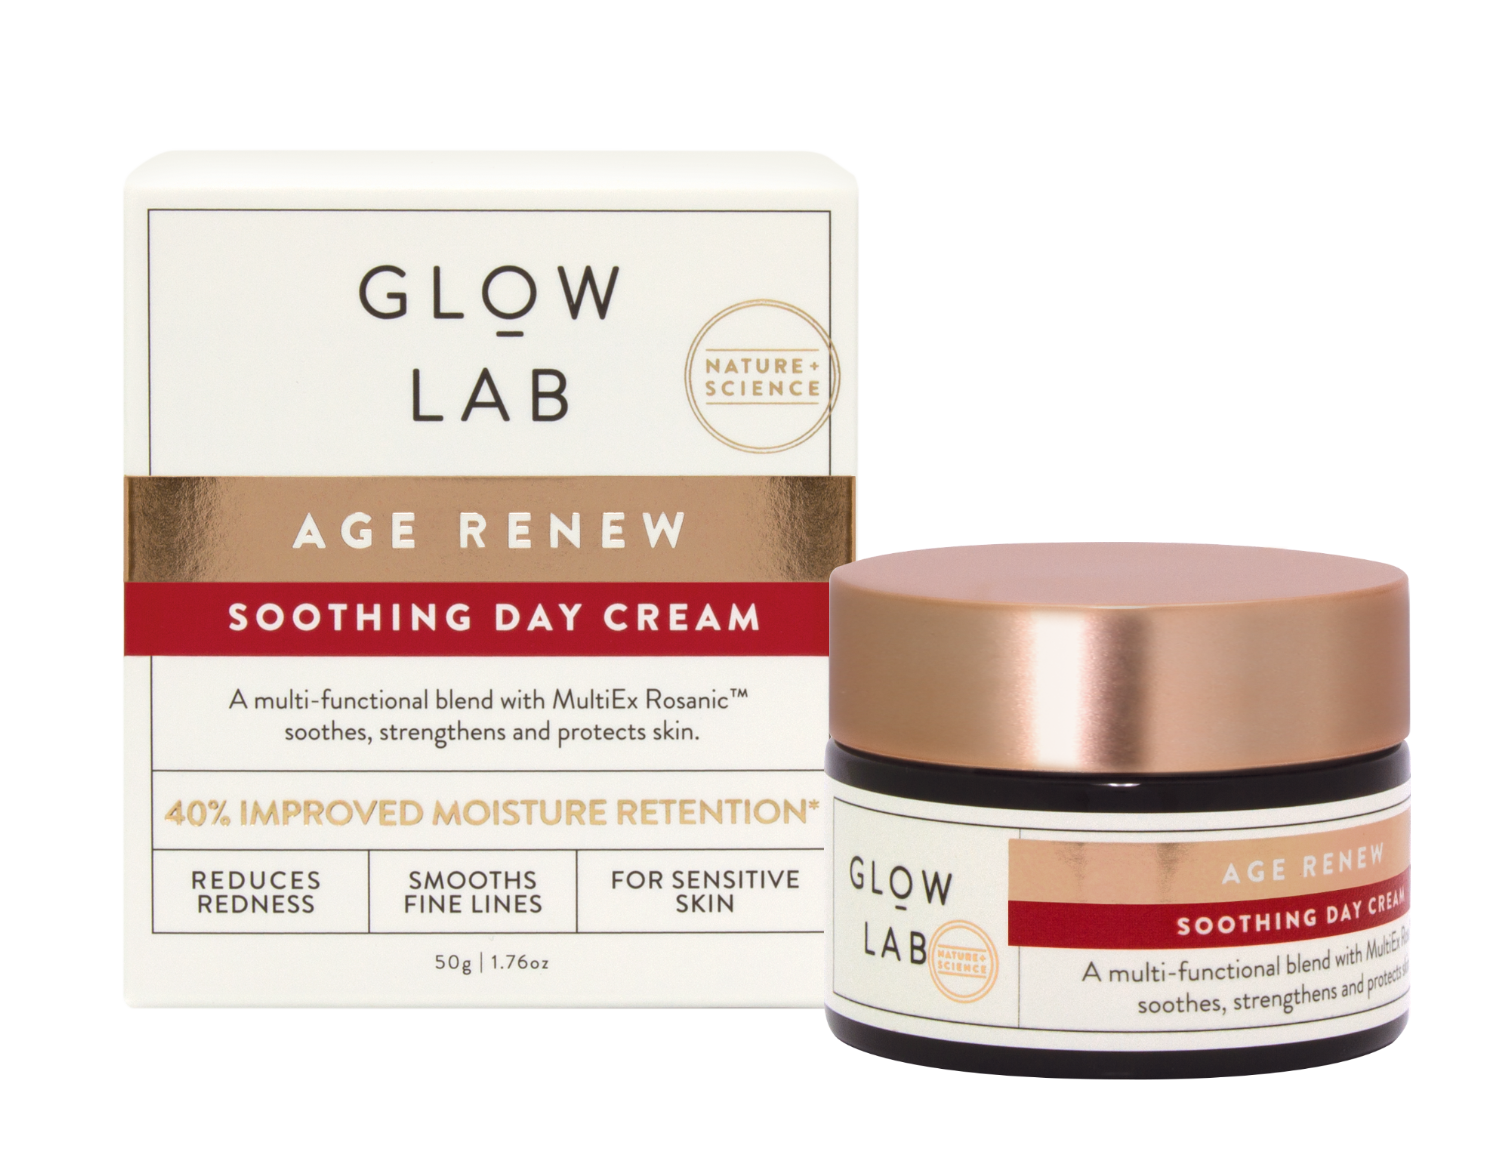 Age Renew Soothing Day Cream